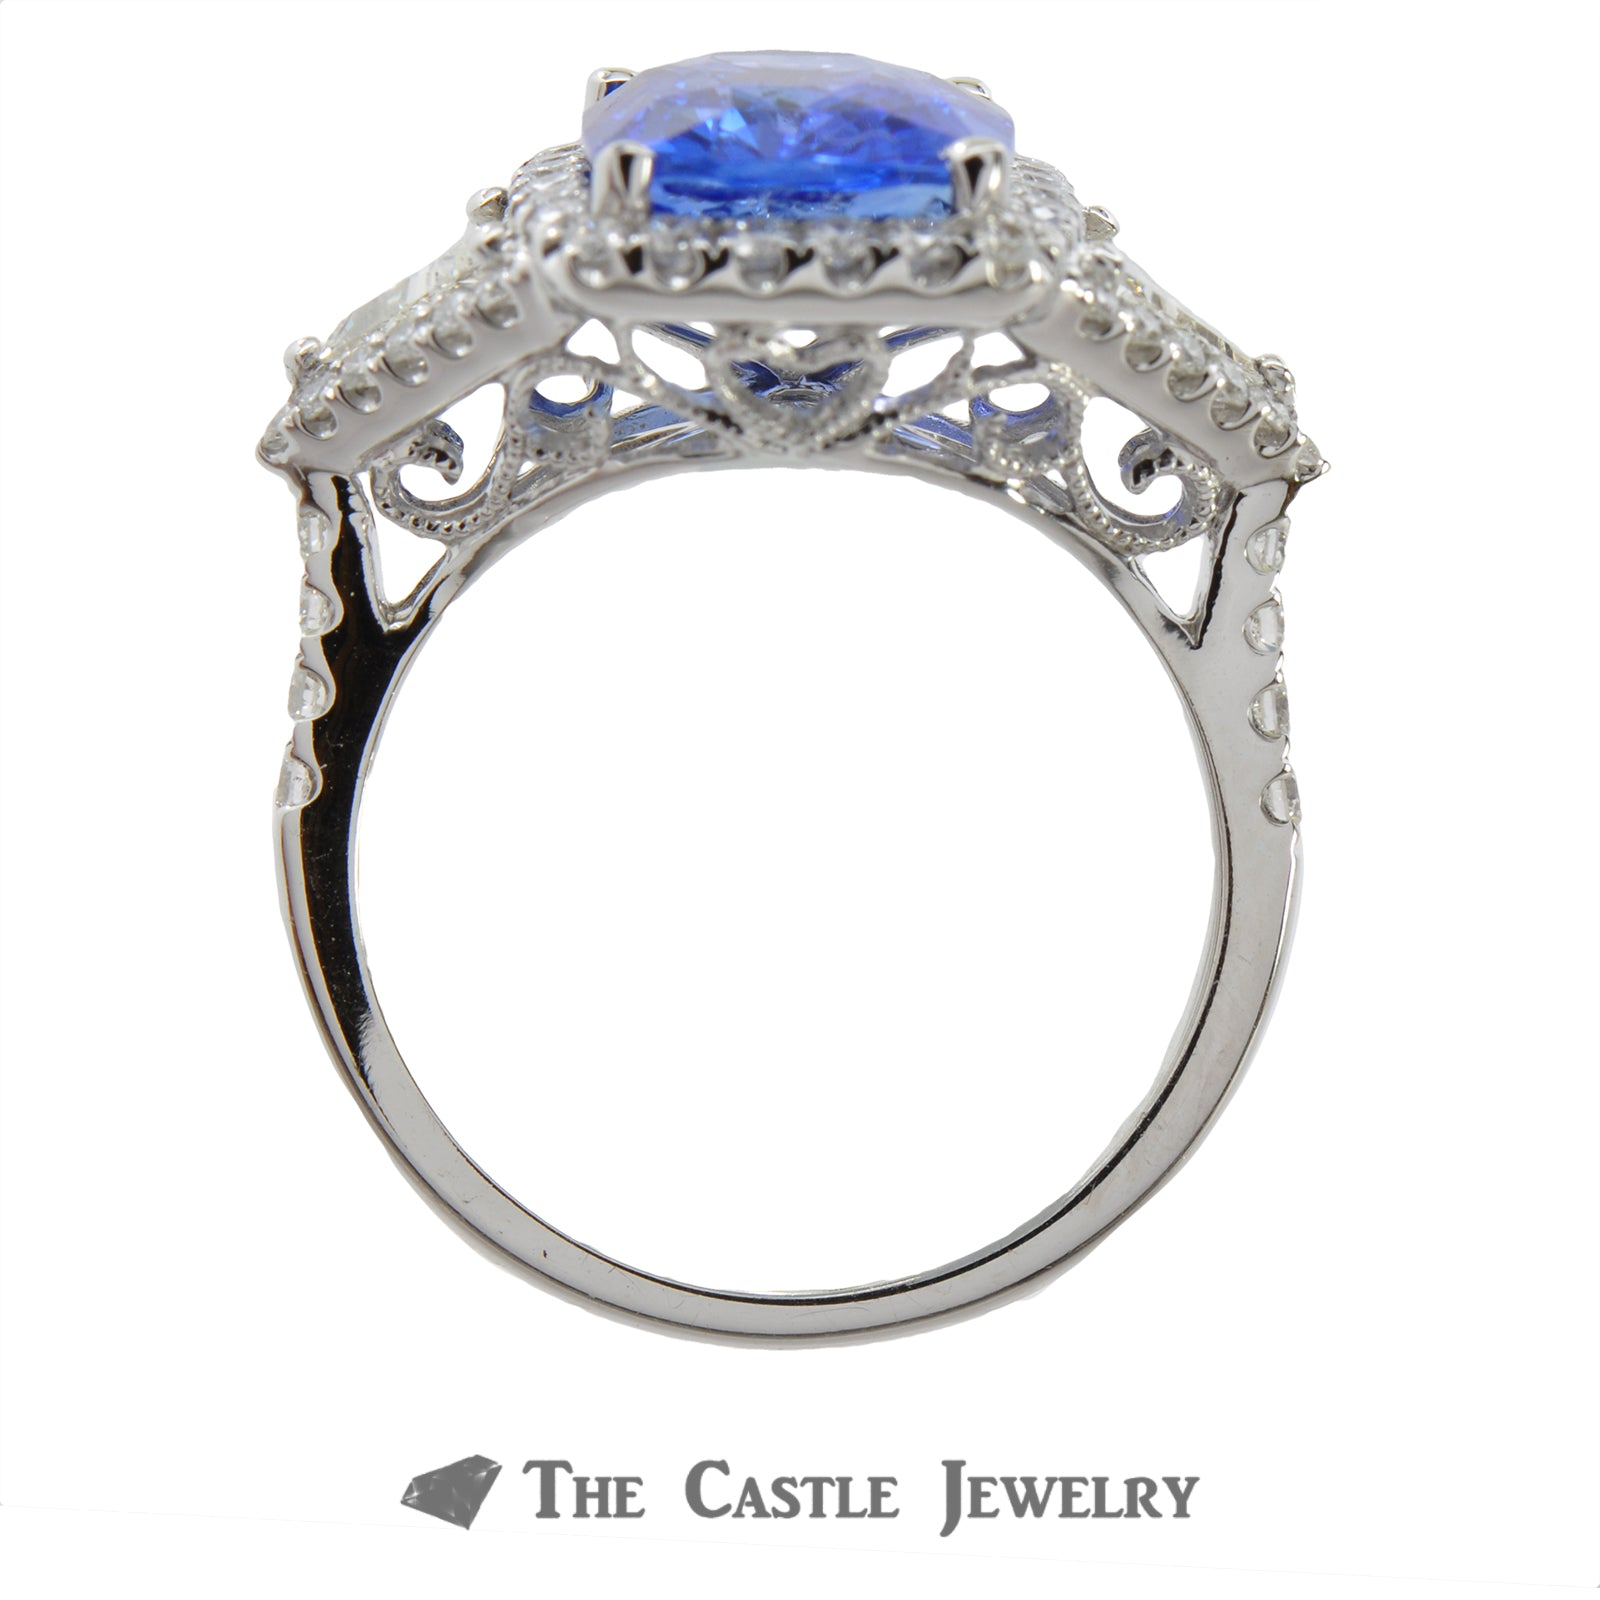 Cushion Cut Sapphire Ring with Trillion & Round Diamond Accents-1